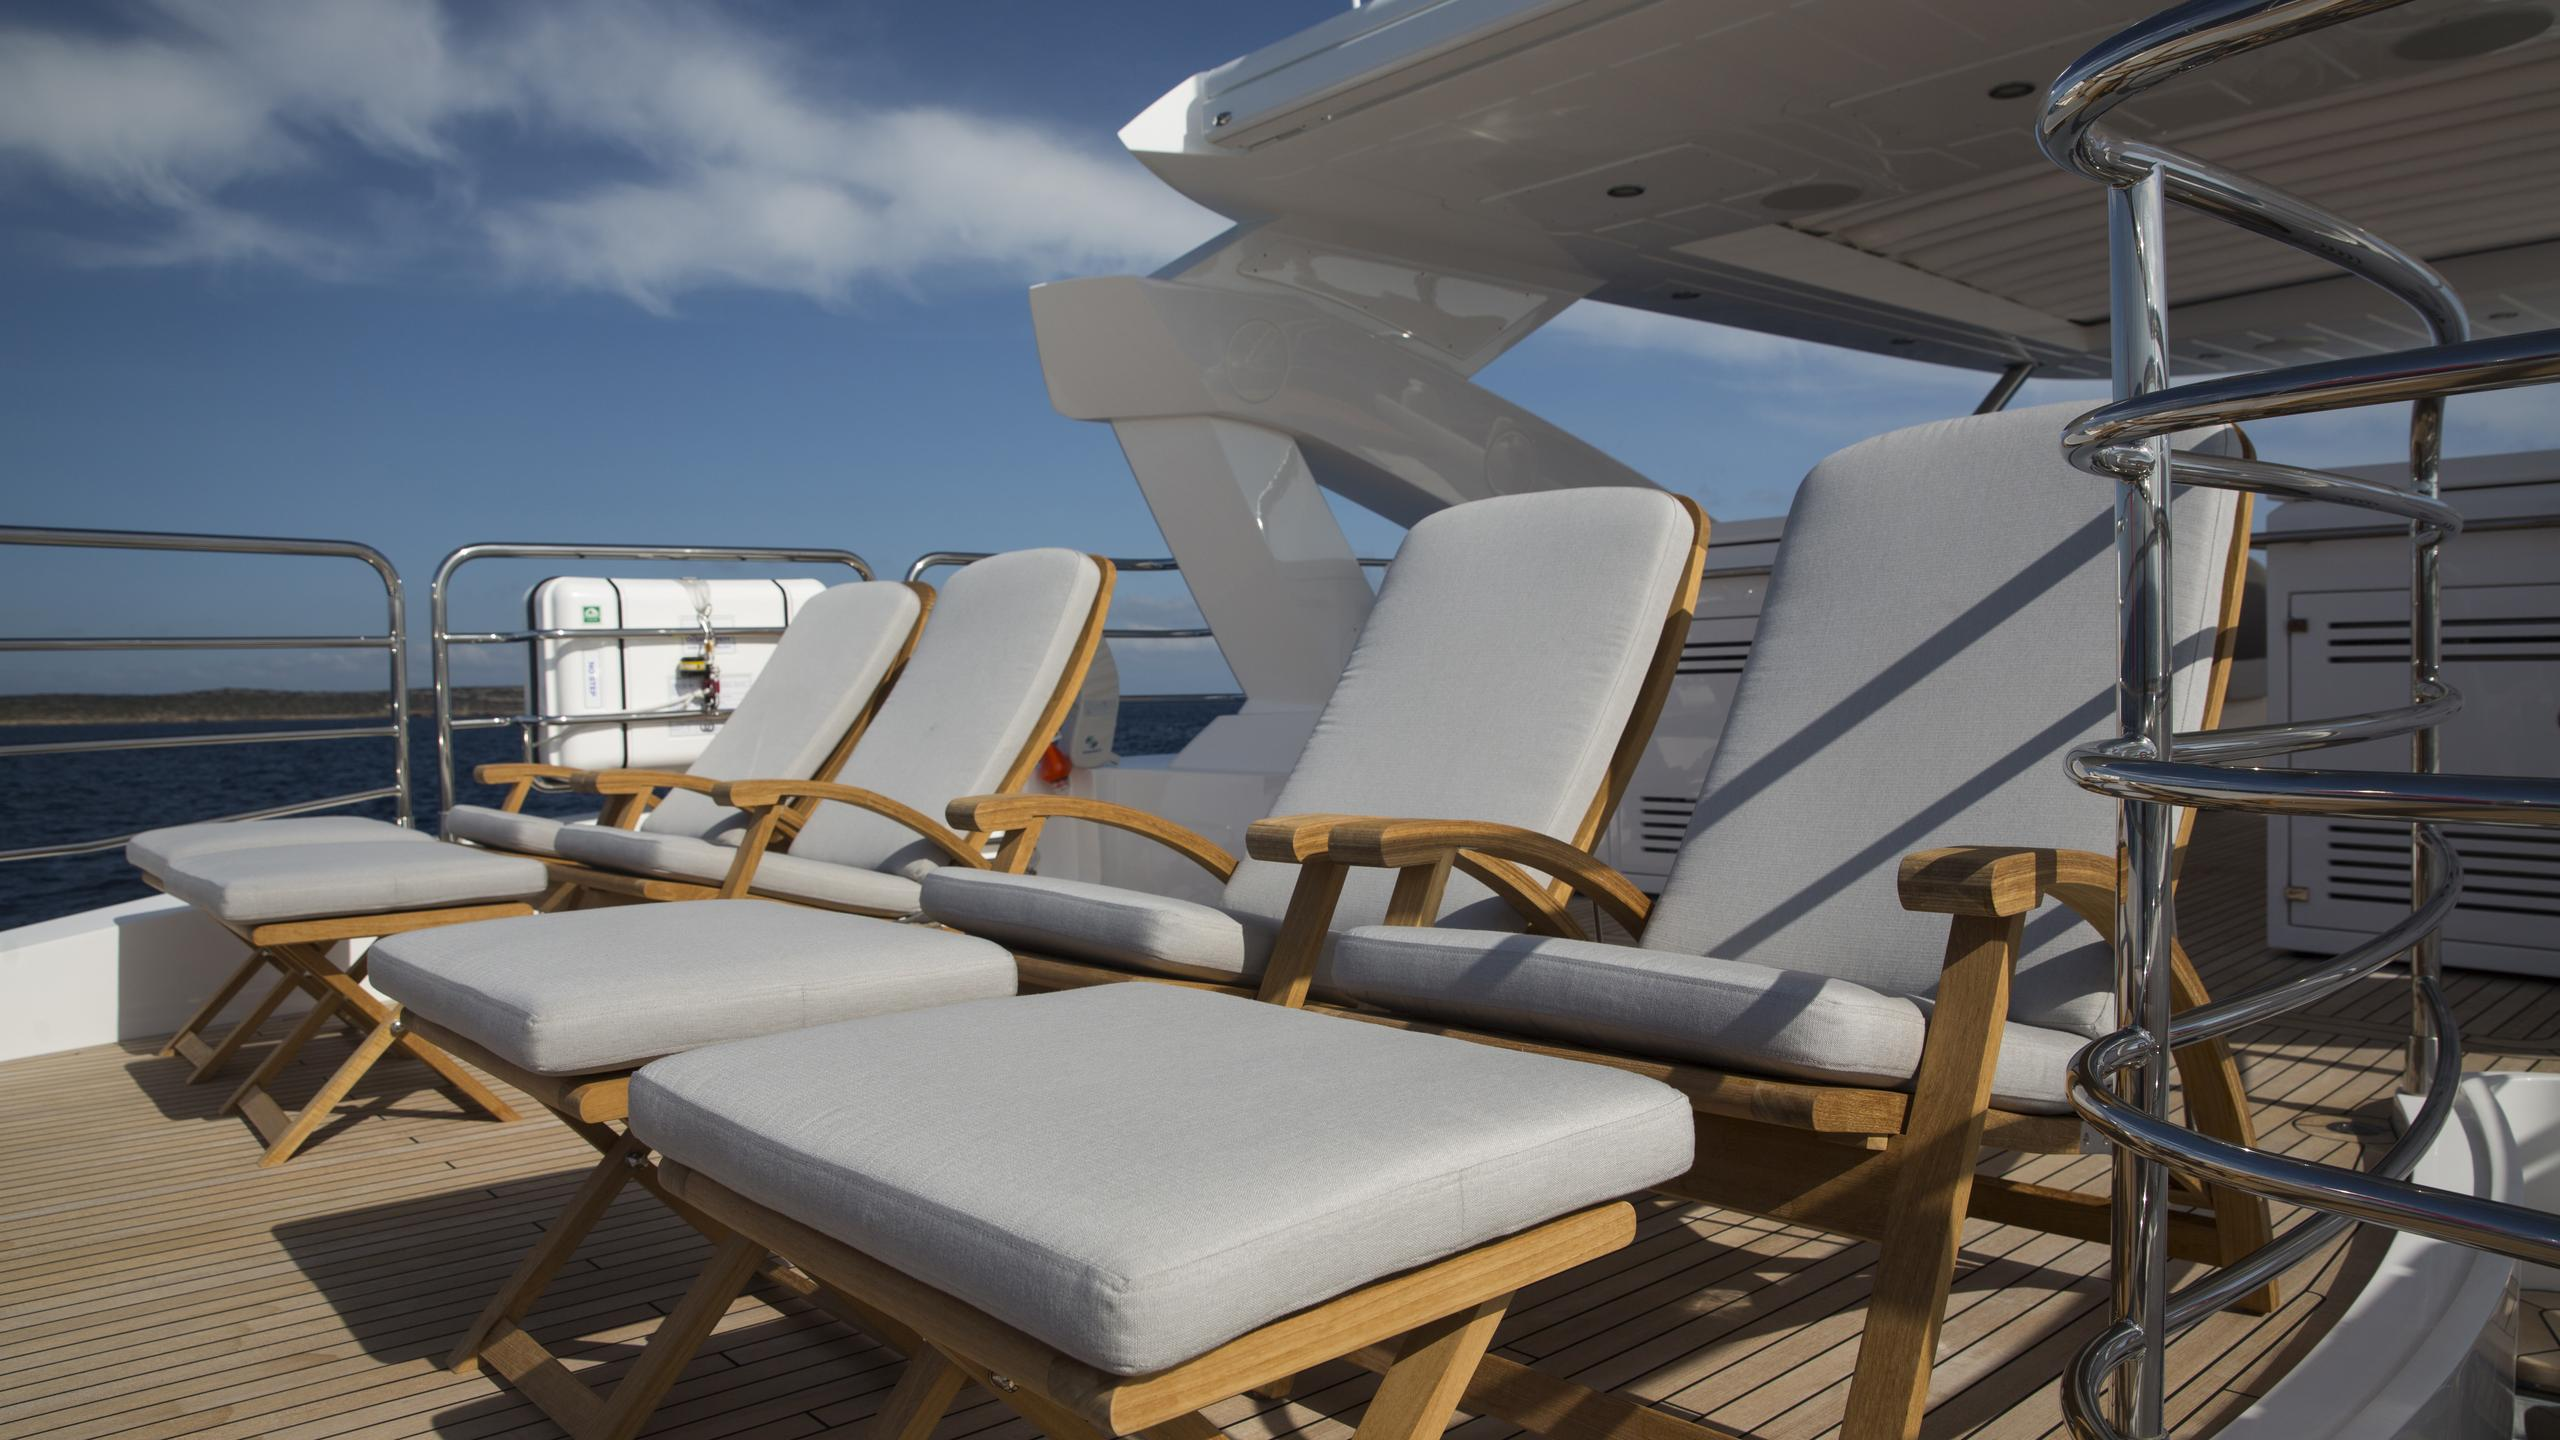 play-the-game-yacht-sun-loungers